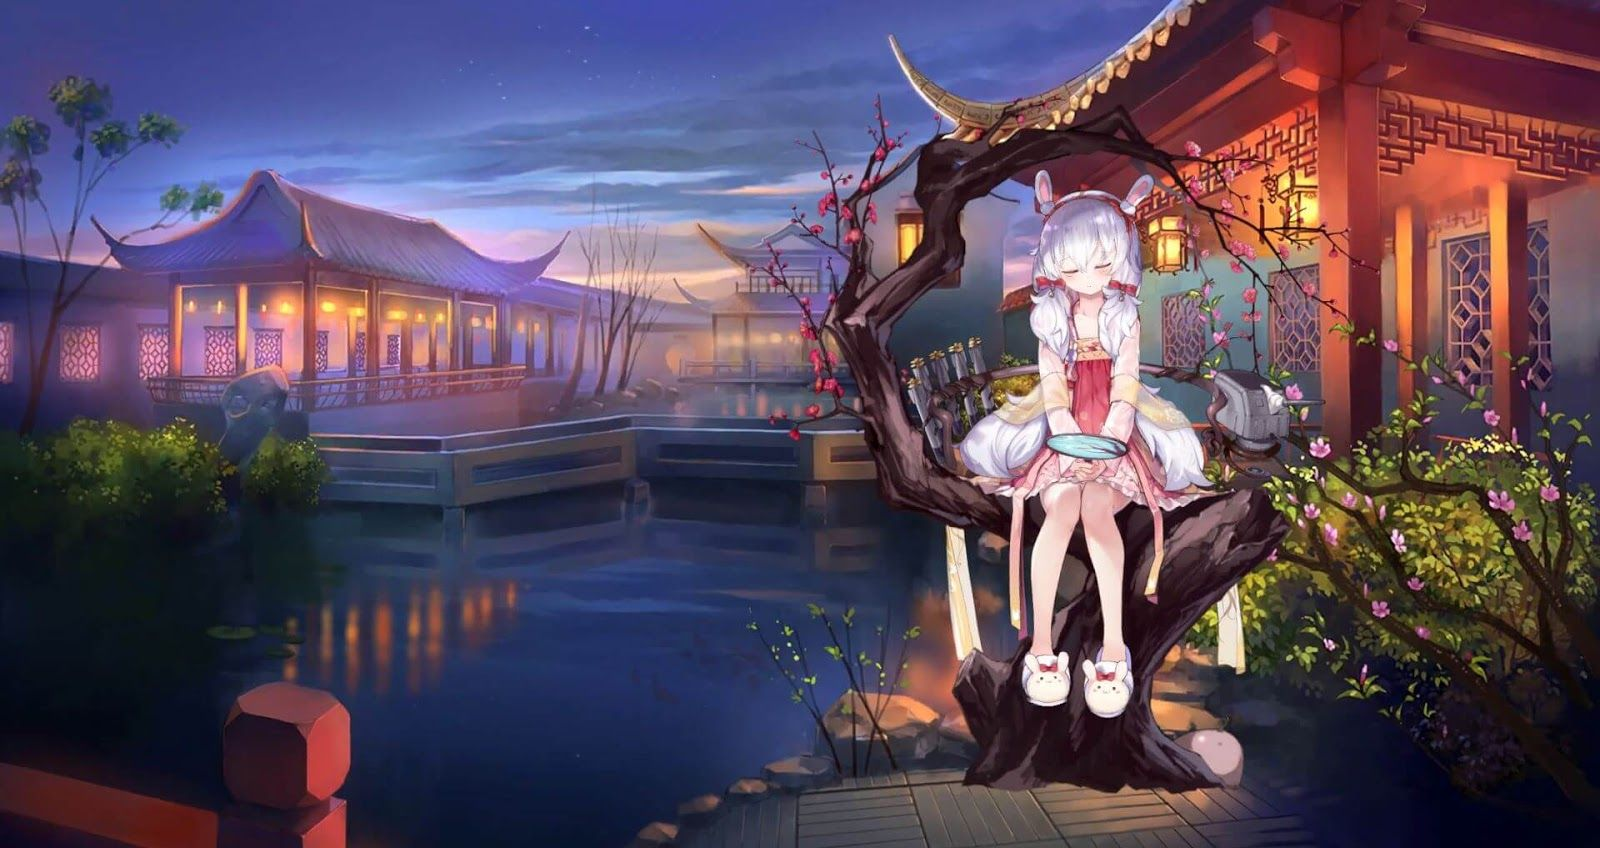 Wallpaper engine best anime wallpapers #wallpaper, 2020. Pin on Wallpaper Engine Anime